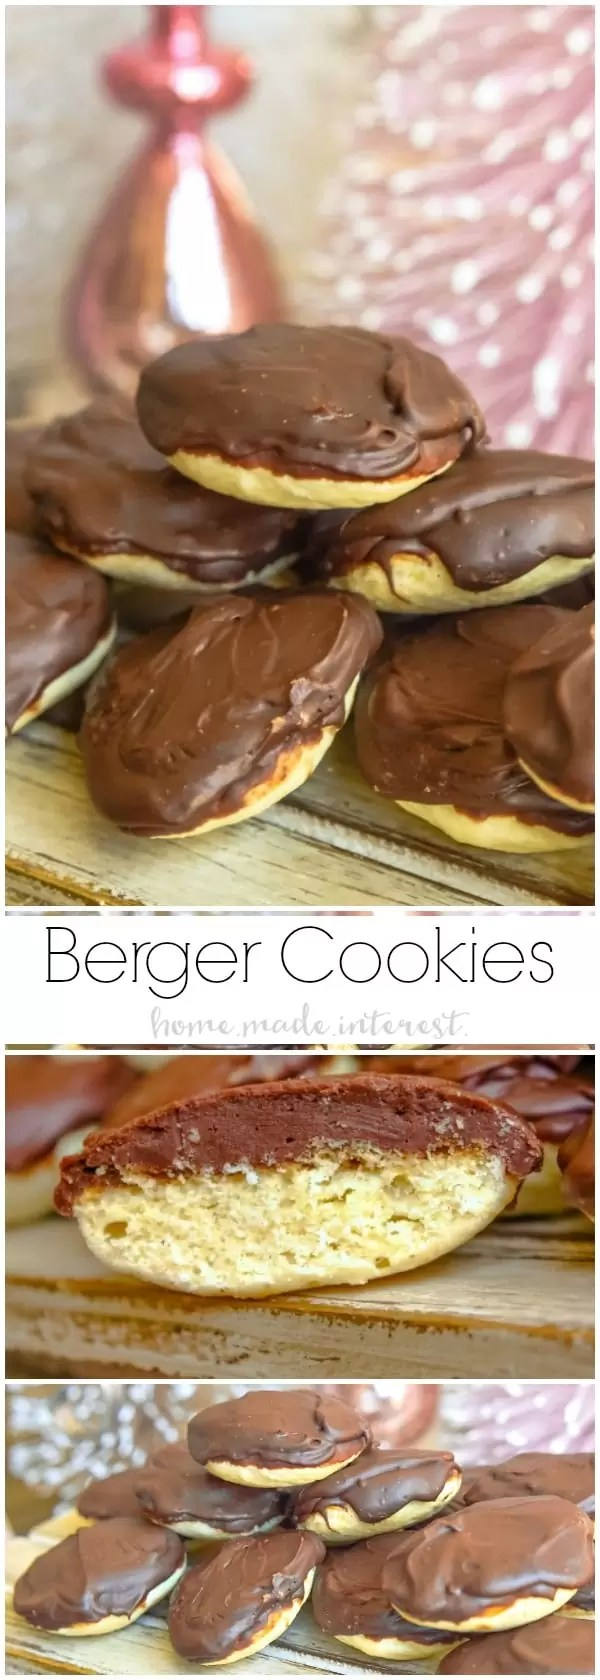 Berger cookies are a symbol of Maryland and if you haven't had one you need to try them! This delicious copycat Berger cookie recipe is a soft, cake-like cookie topped with a mound of rich fudge frosting. These Berger cookies make a great Christmas cookie recipe with a glass of milk. Santa will be so happy to see them!